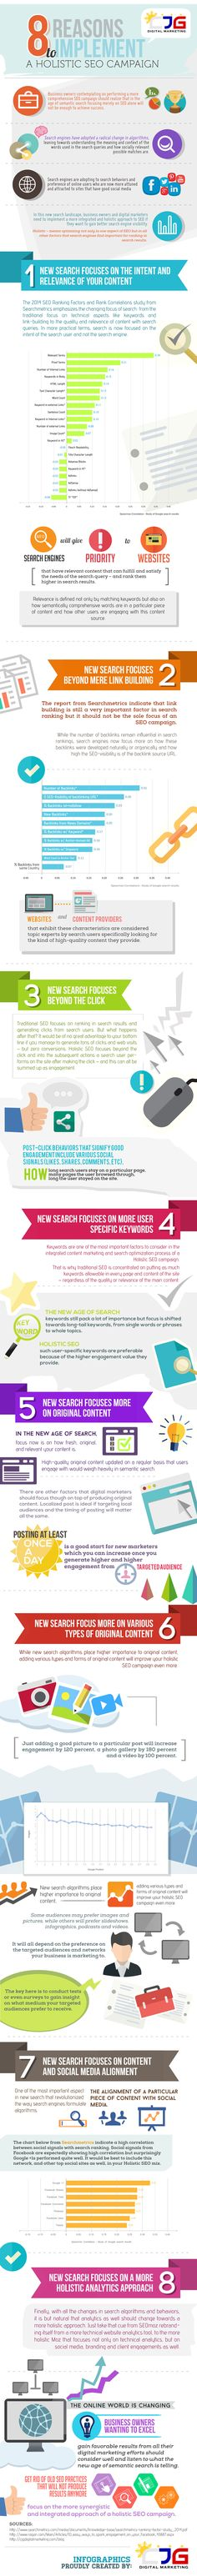 Business owners contemplating on performing a more comprehensive SEO campaign should realize that in the age of semantic search focusing merely on SEO alone will not be enough to achieve success. Sea…